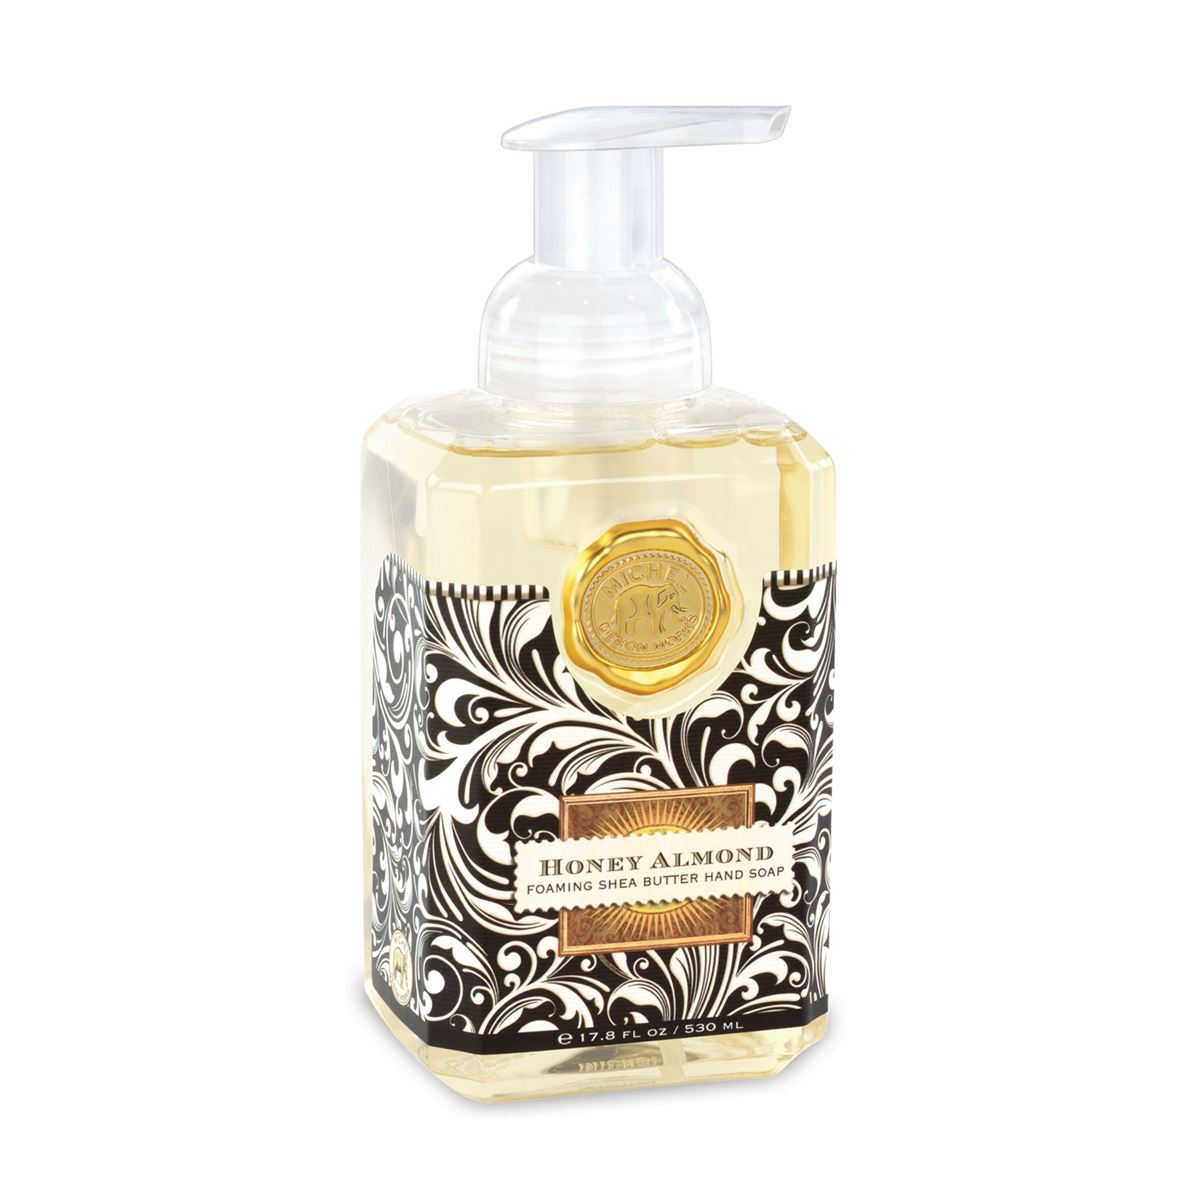 The classic Honey Almond scent features sweet almonds muddled with cherry, vanilla, and honey. This generously sized foaming hand soap contains luxurious shea butter and aloe vera for gentle cleansing and moisturizing.